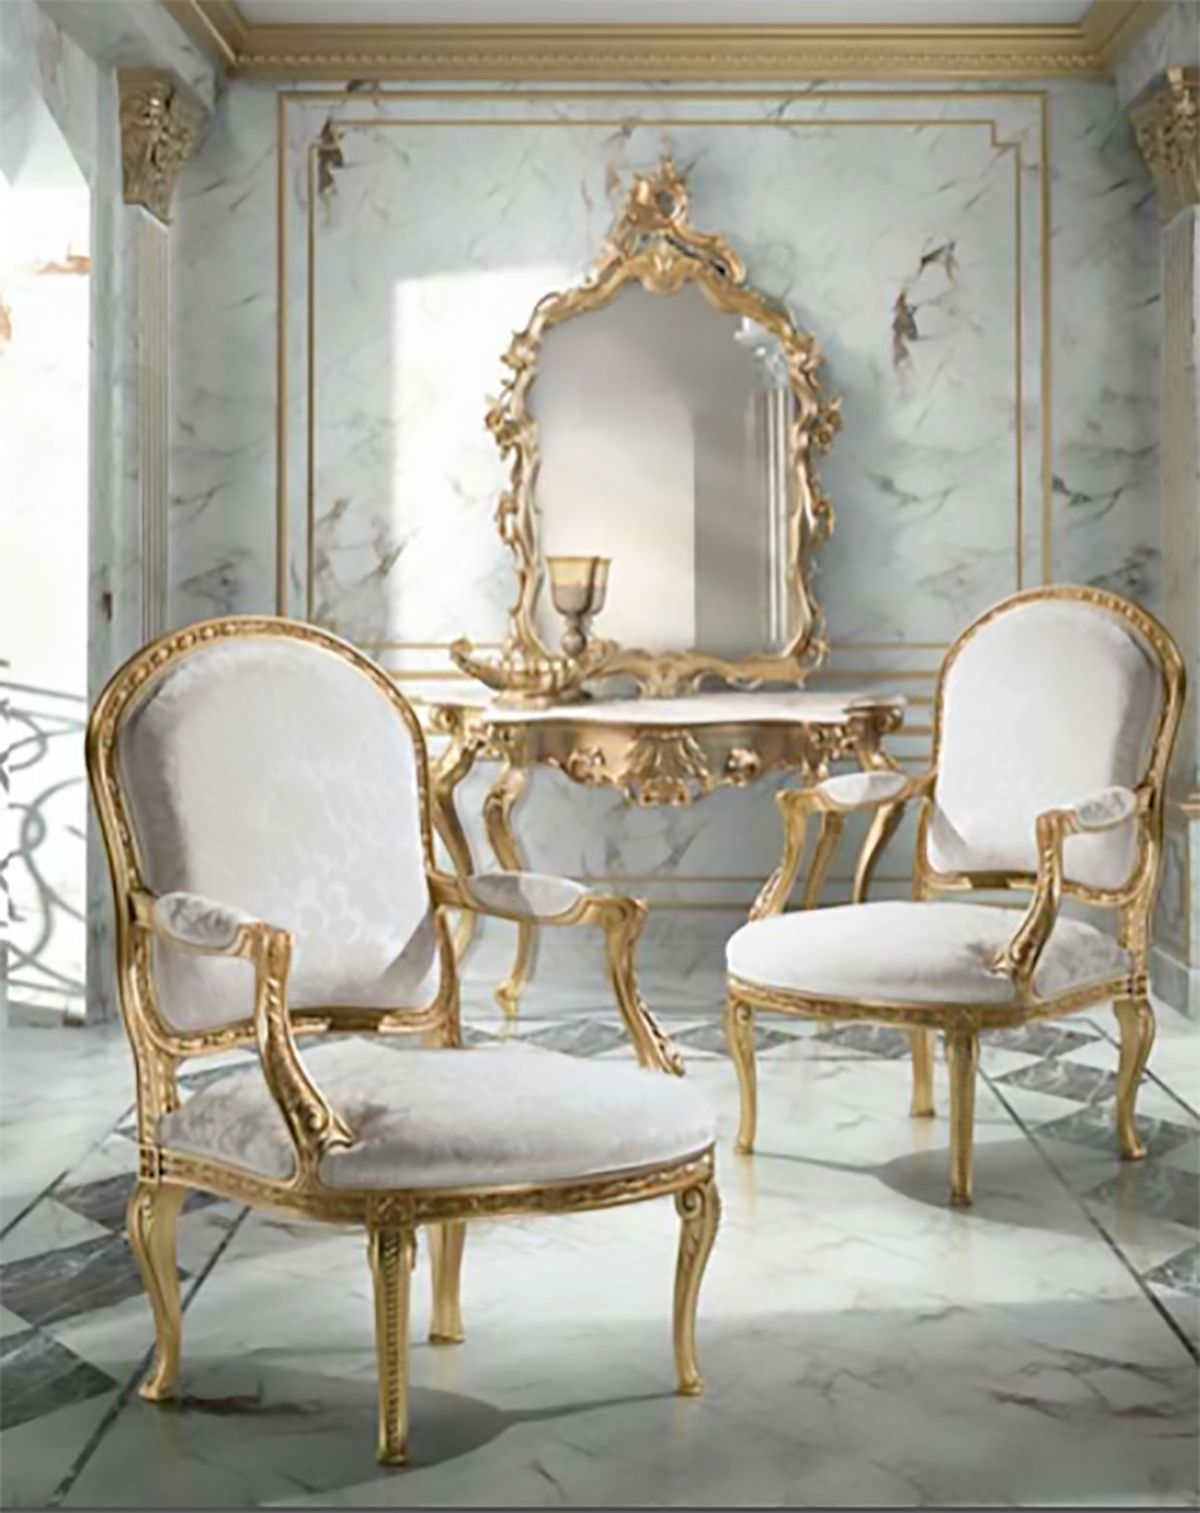 Classic Withe Chair Luxury Furniture Interior Design And Construction Classic Furniture Luxury Furniture